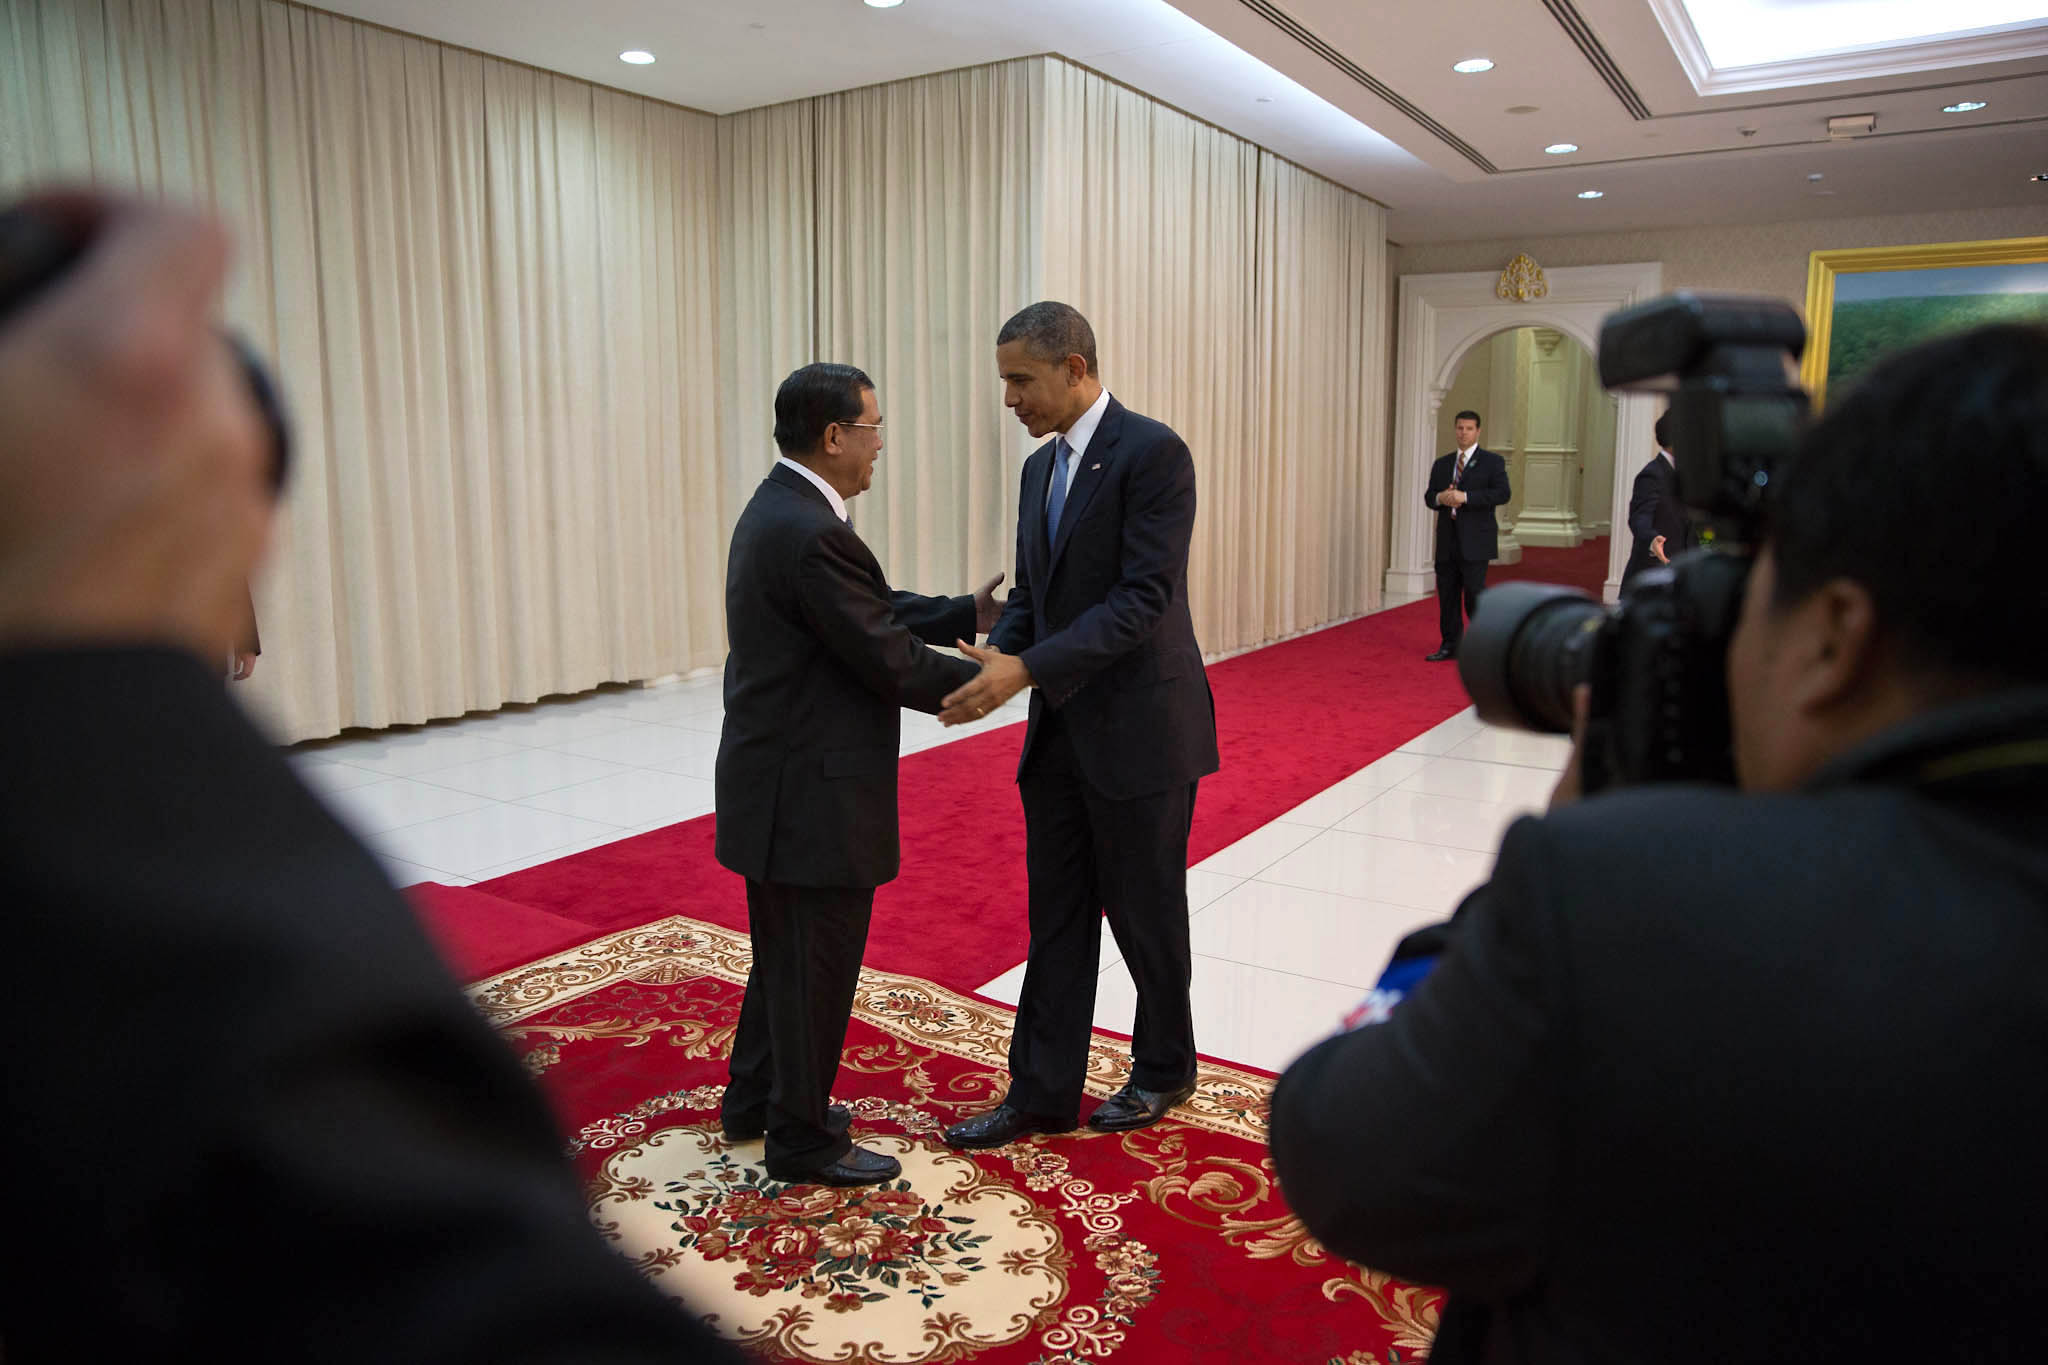 President Barack Obama is welcomed by Cambodia's Prime Minister Hun Sen